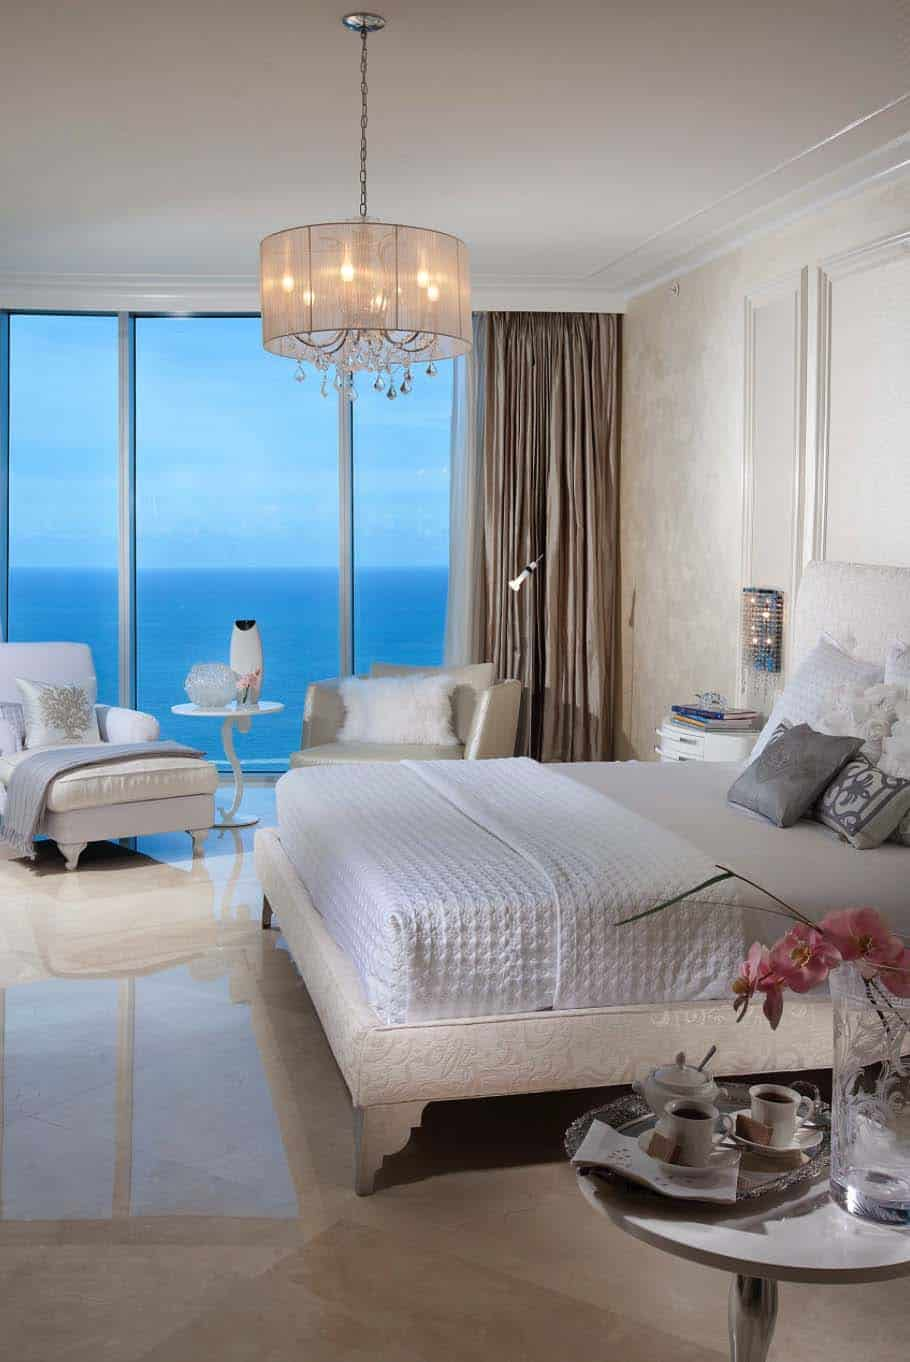 Bedroom With Ocean Views-18-1 Kindesign